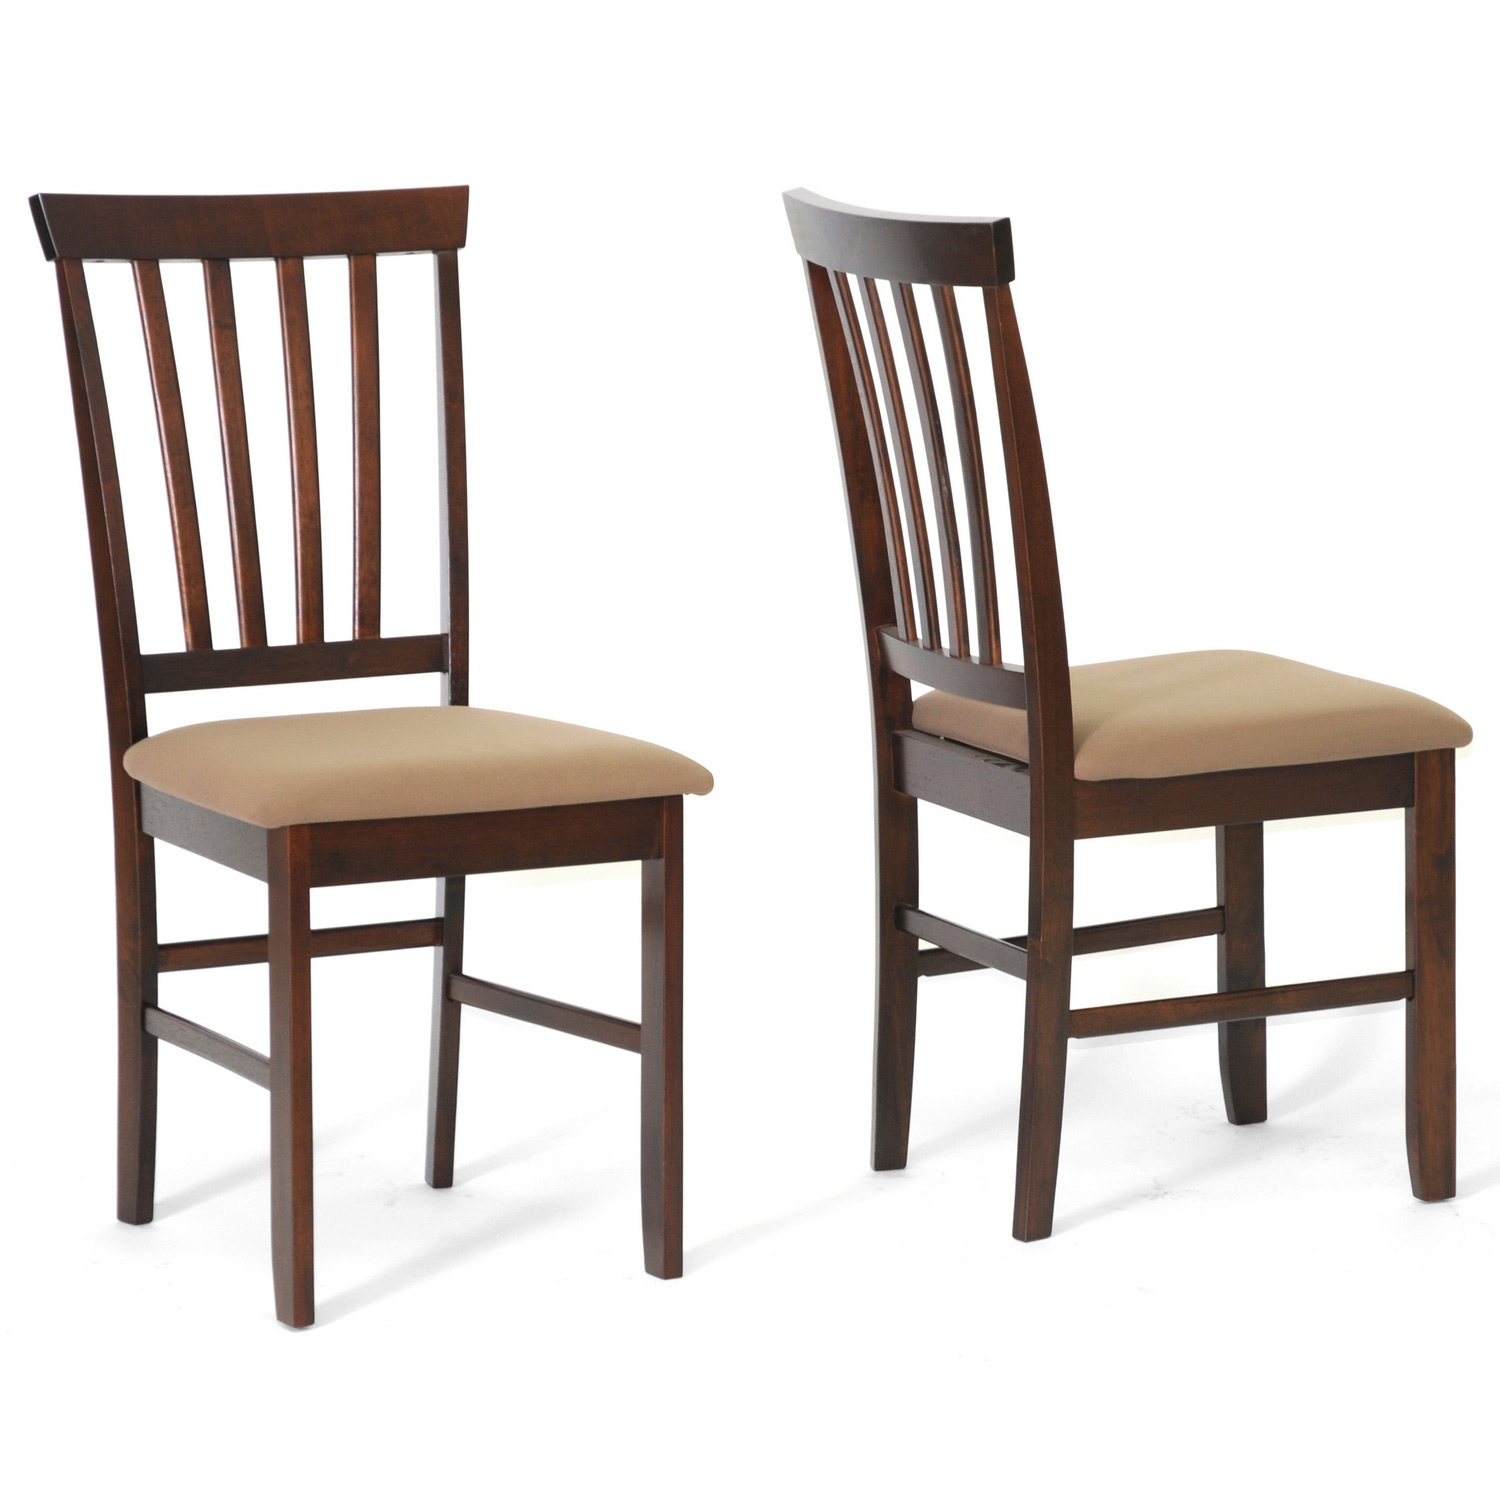 Tiffany brown wood modern dining chairs set of 2 by for Contemporary seating chairs